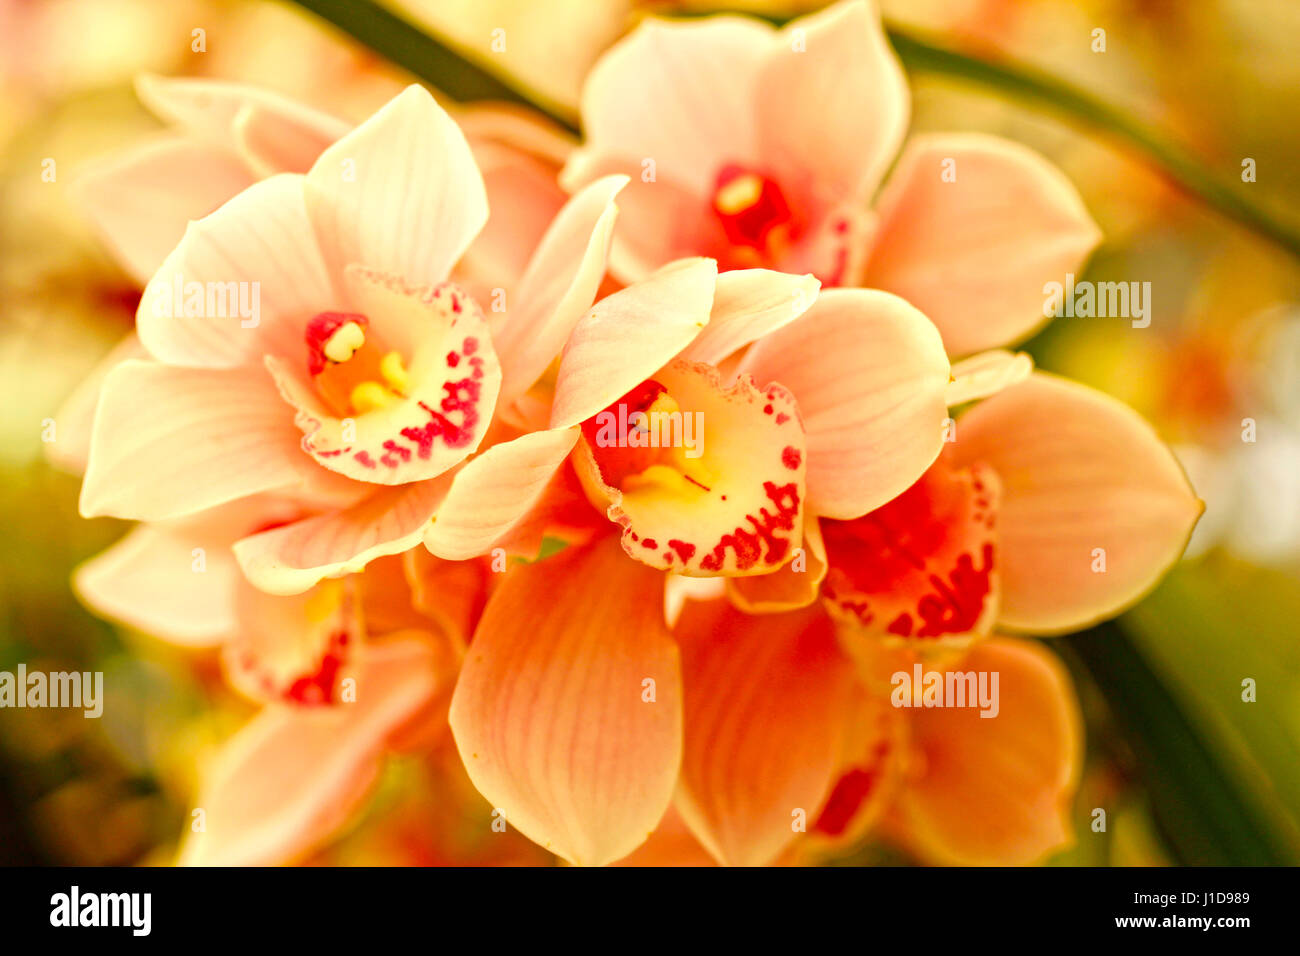 cymbidium orchids stockfotos cymbidium orchids bilder alamy. Black Bedroom Furniture Sets. Home Design Ideas